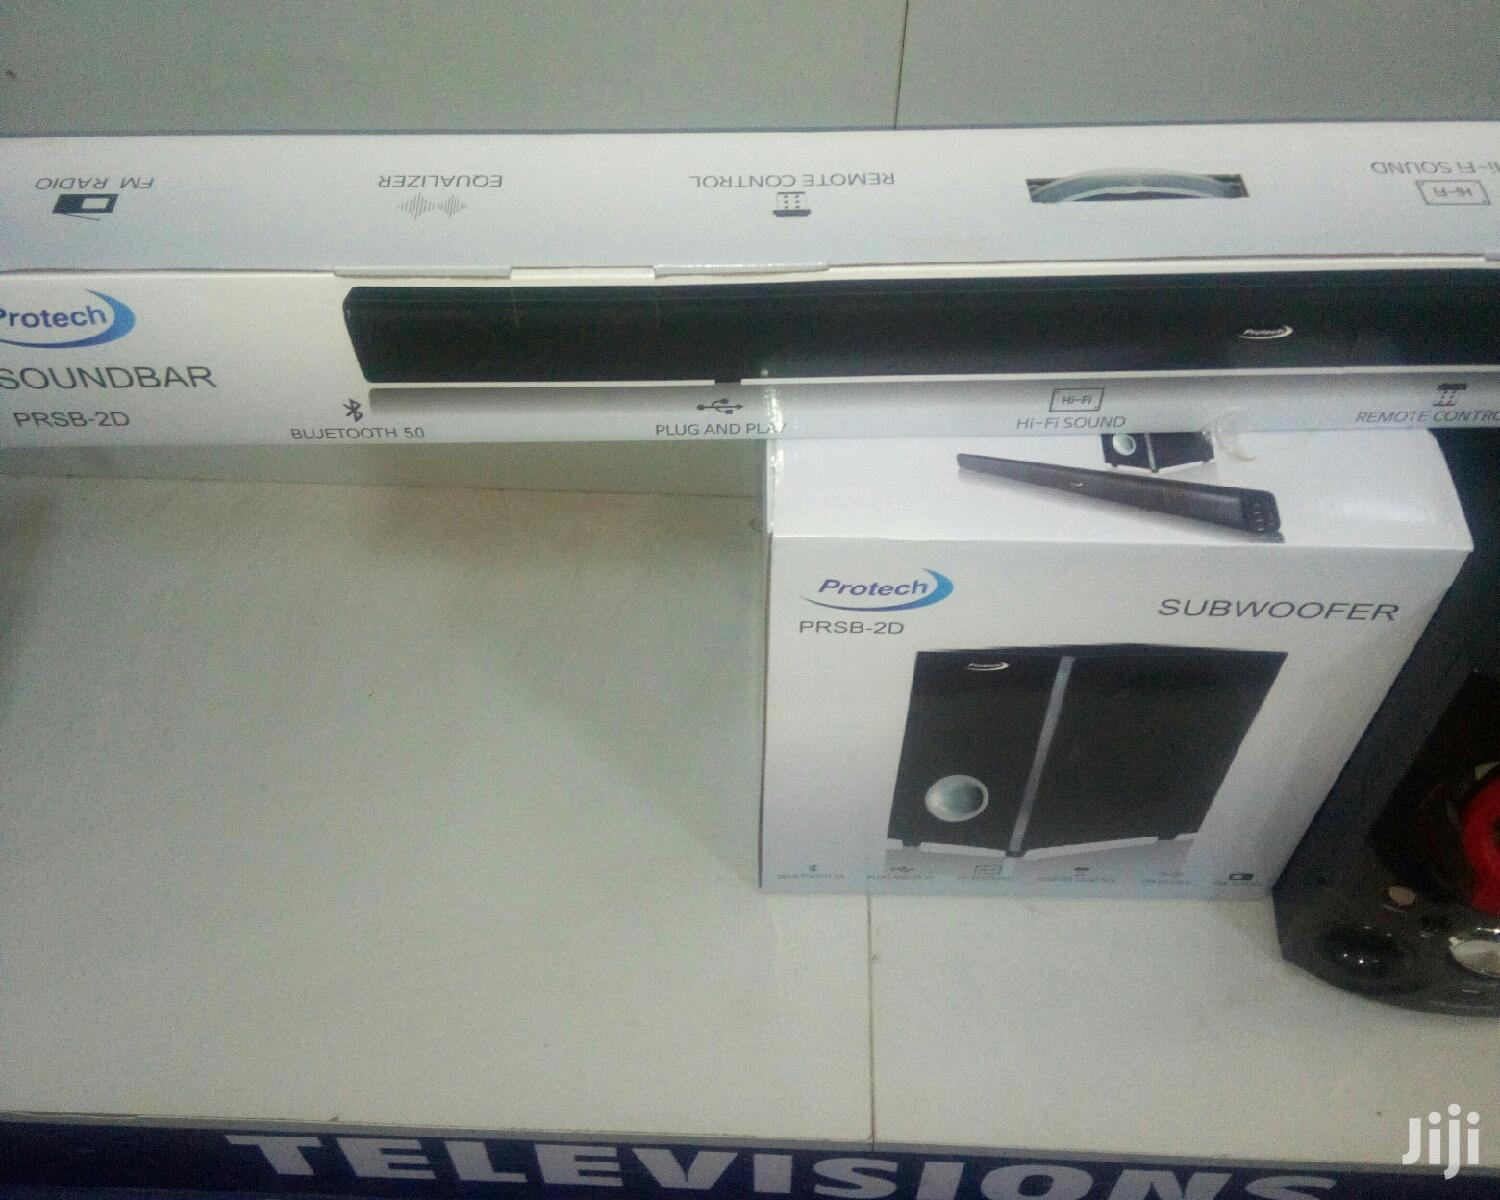 New Protech Sound Bar PRSB-2D | Audio & Music Equipment for sale in Roman Ridge, Greater Accra, Ghana